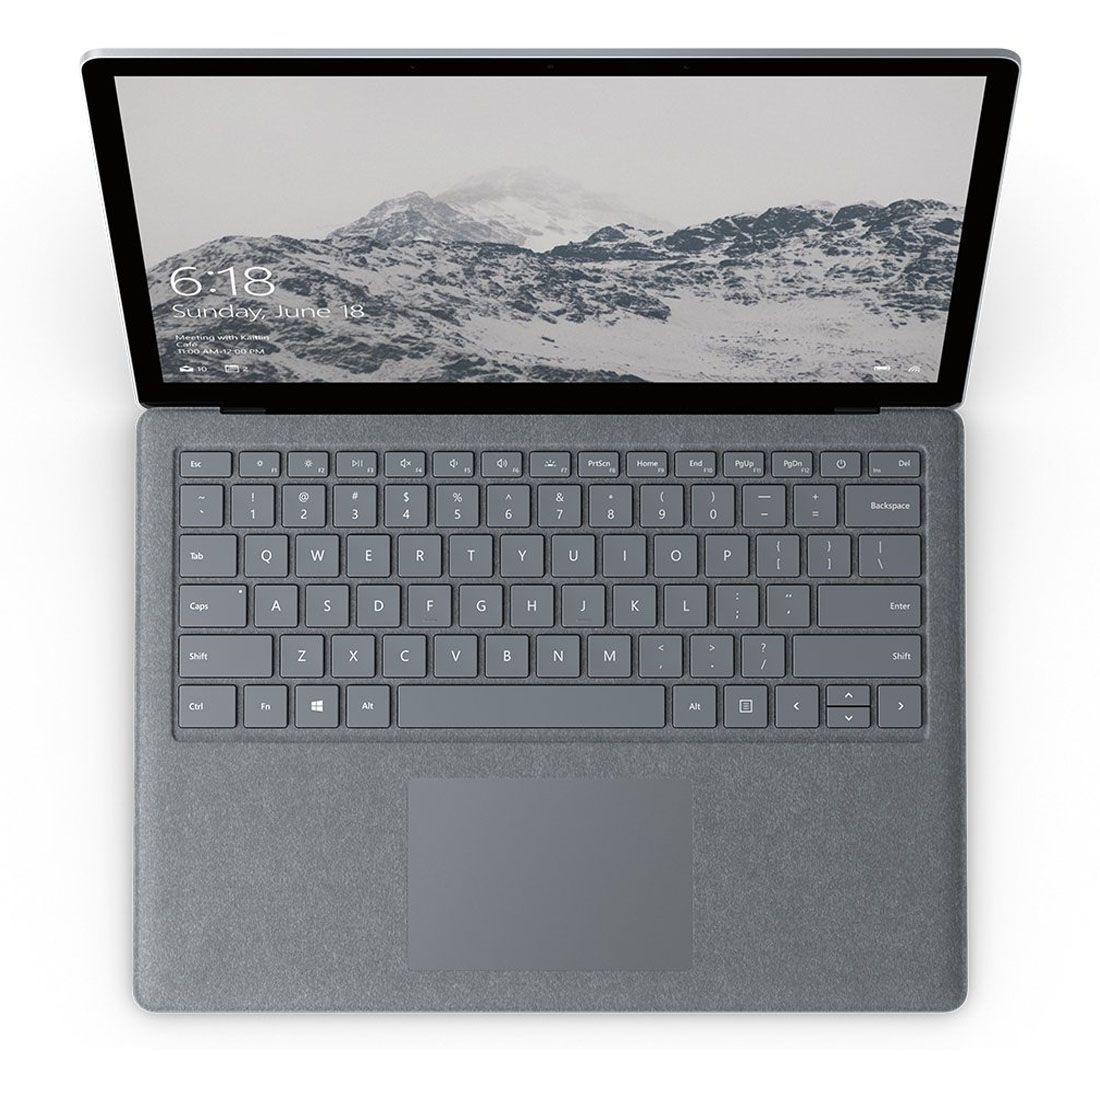 Microsoft Surface Laptop 1769-Intel Core i5, 8 GB de RAM, SSD de 128 GB, tela sensível ao toque de 13,5 polegadas, Win10 S + Mouse Microsoft Surface Arc Bluetooth Genuíno